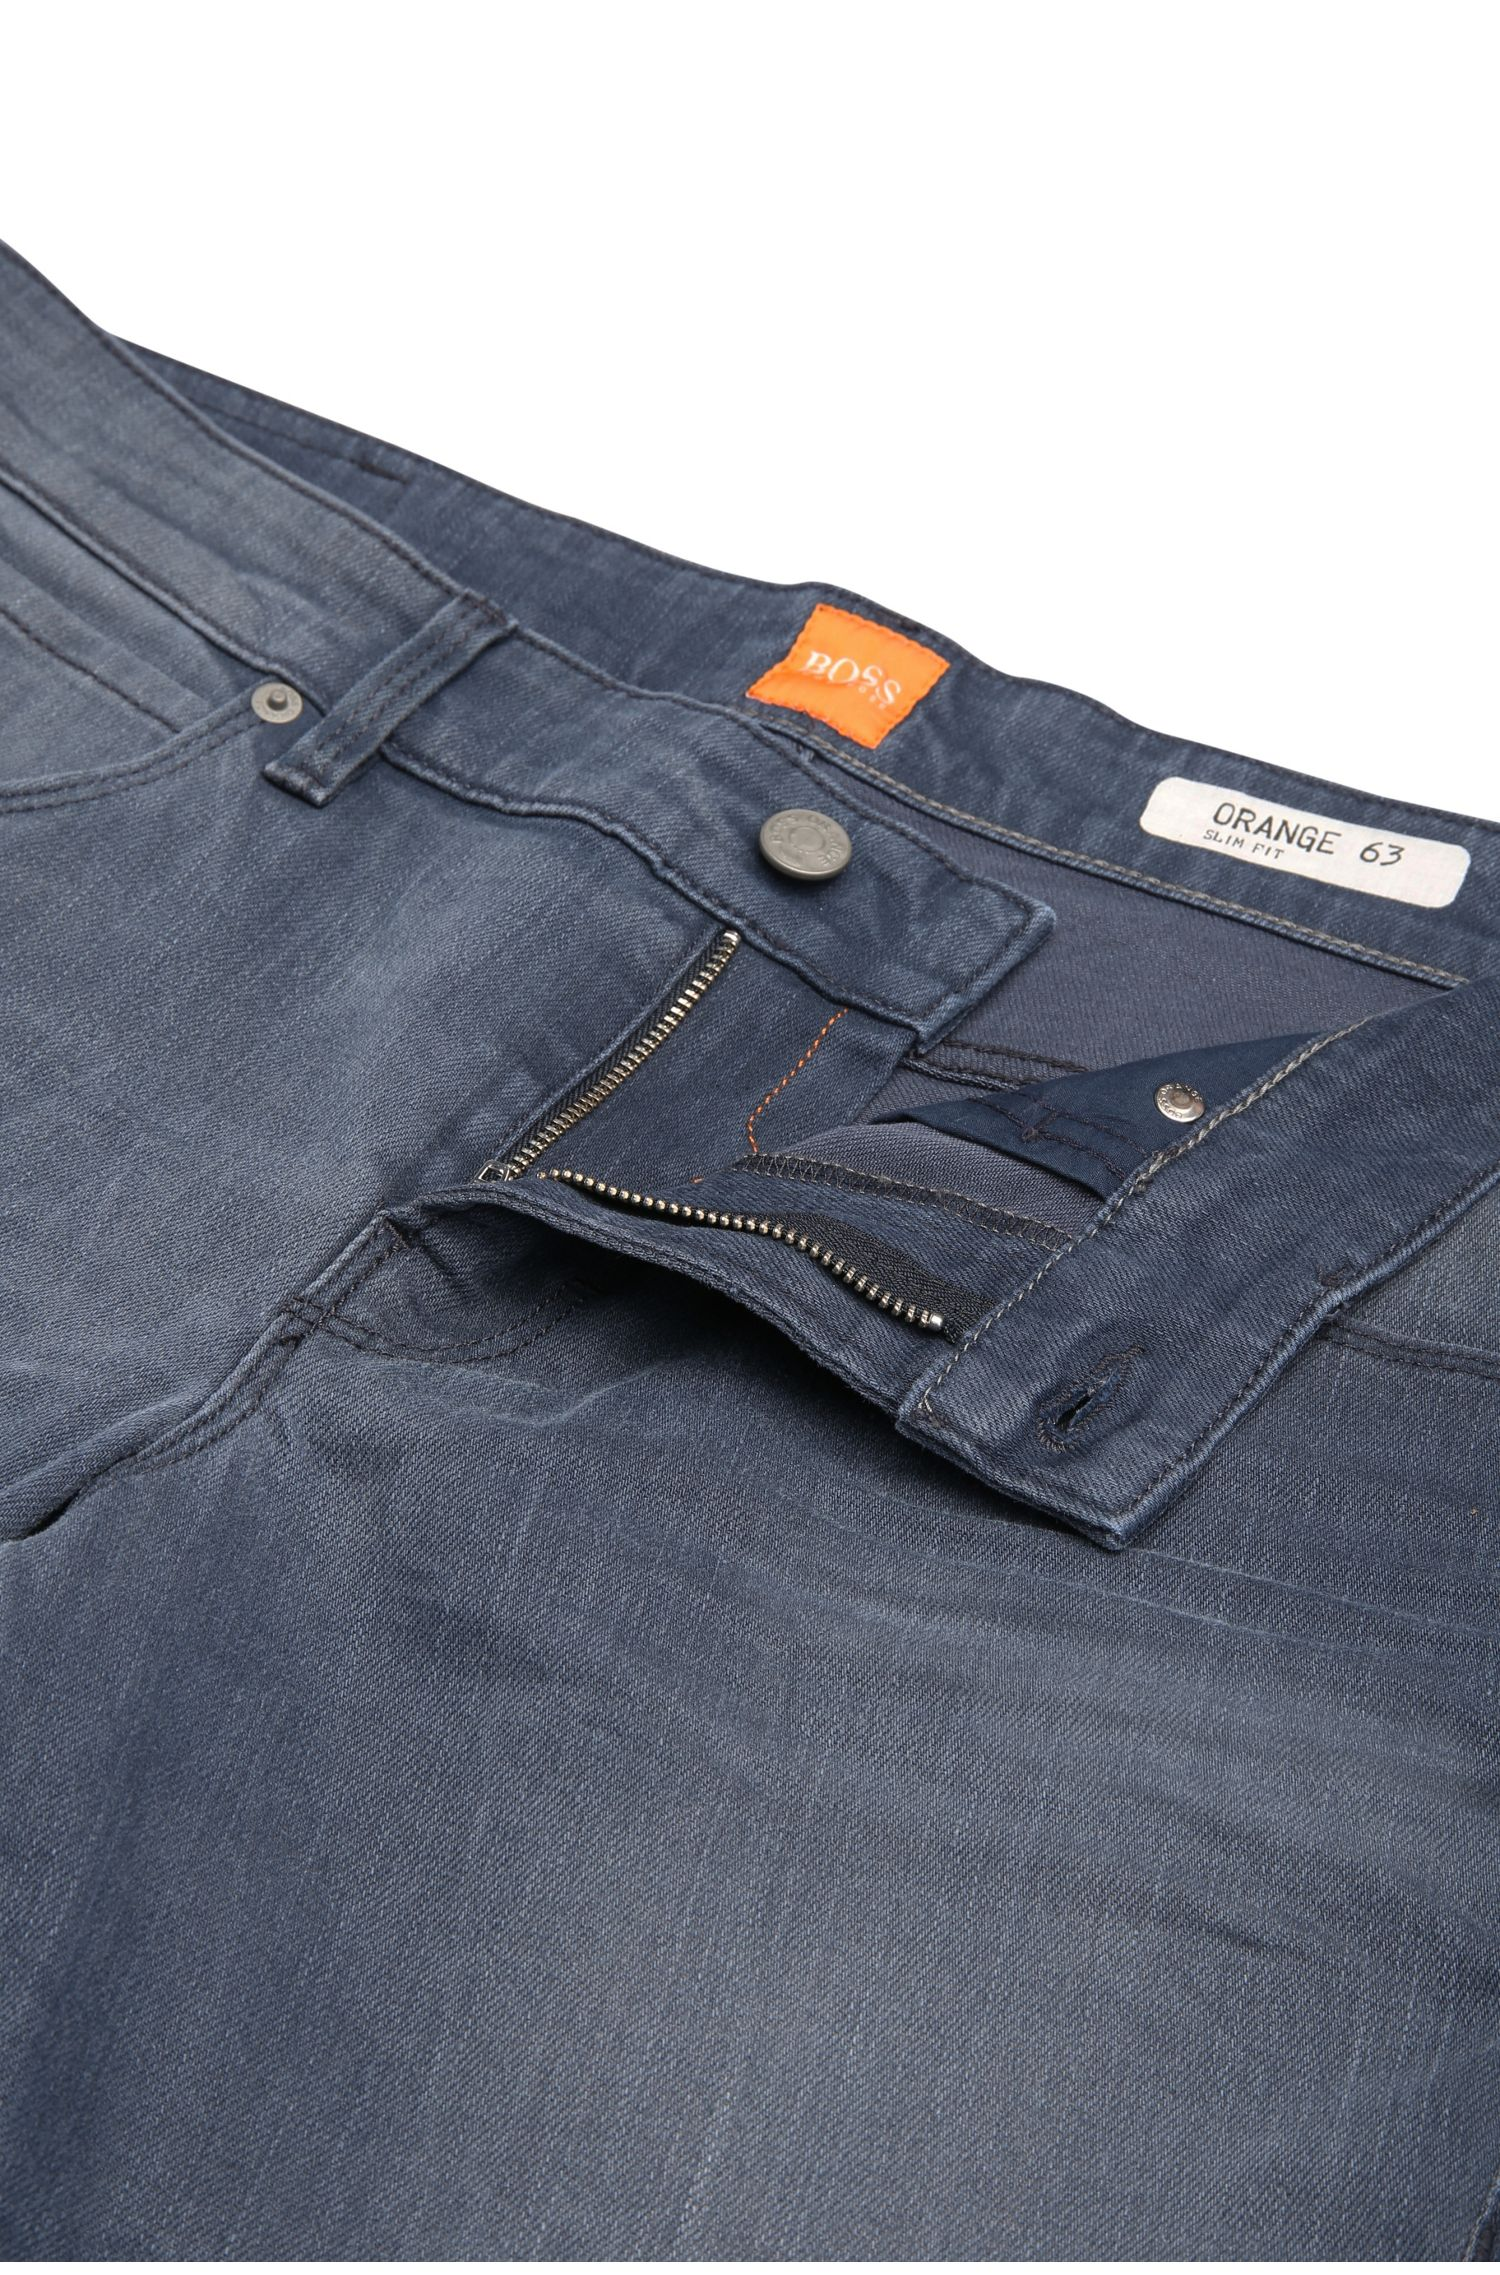 Jeans Slim Fit en coton mélangé extensible : « Orange63 »